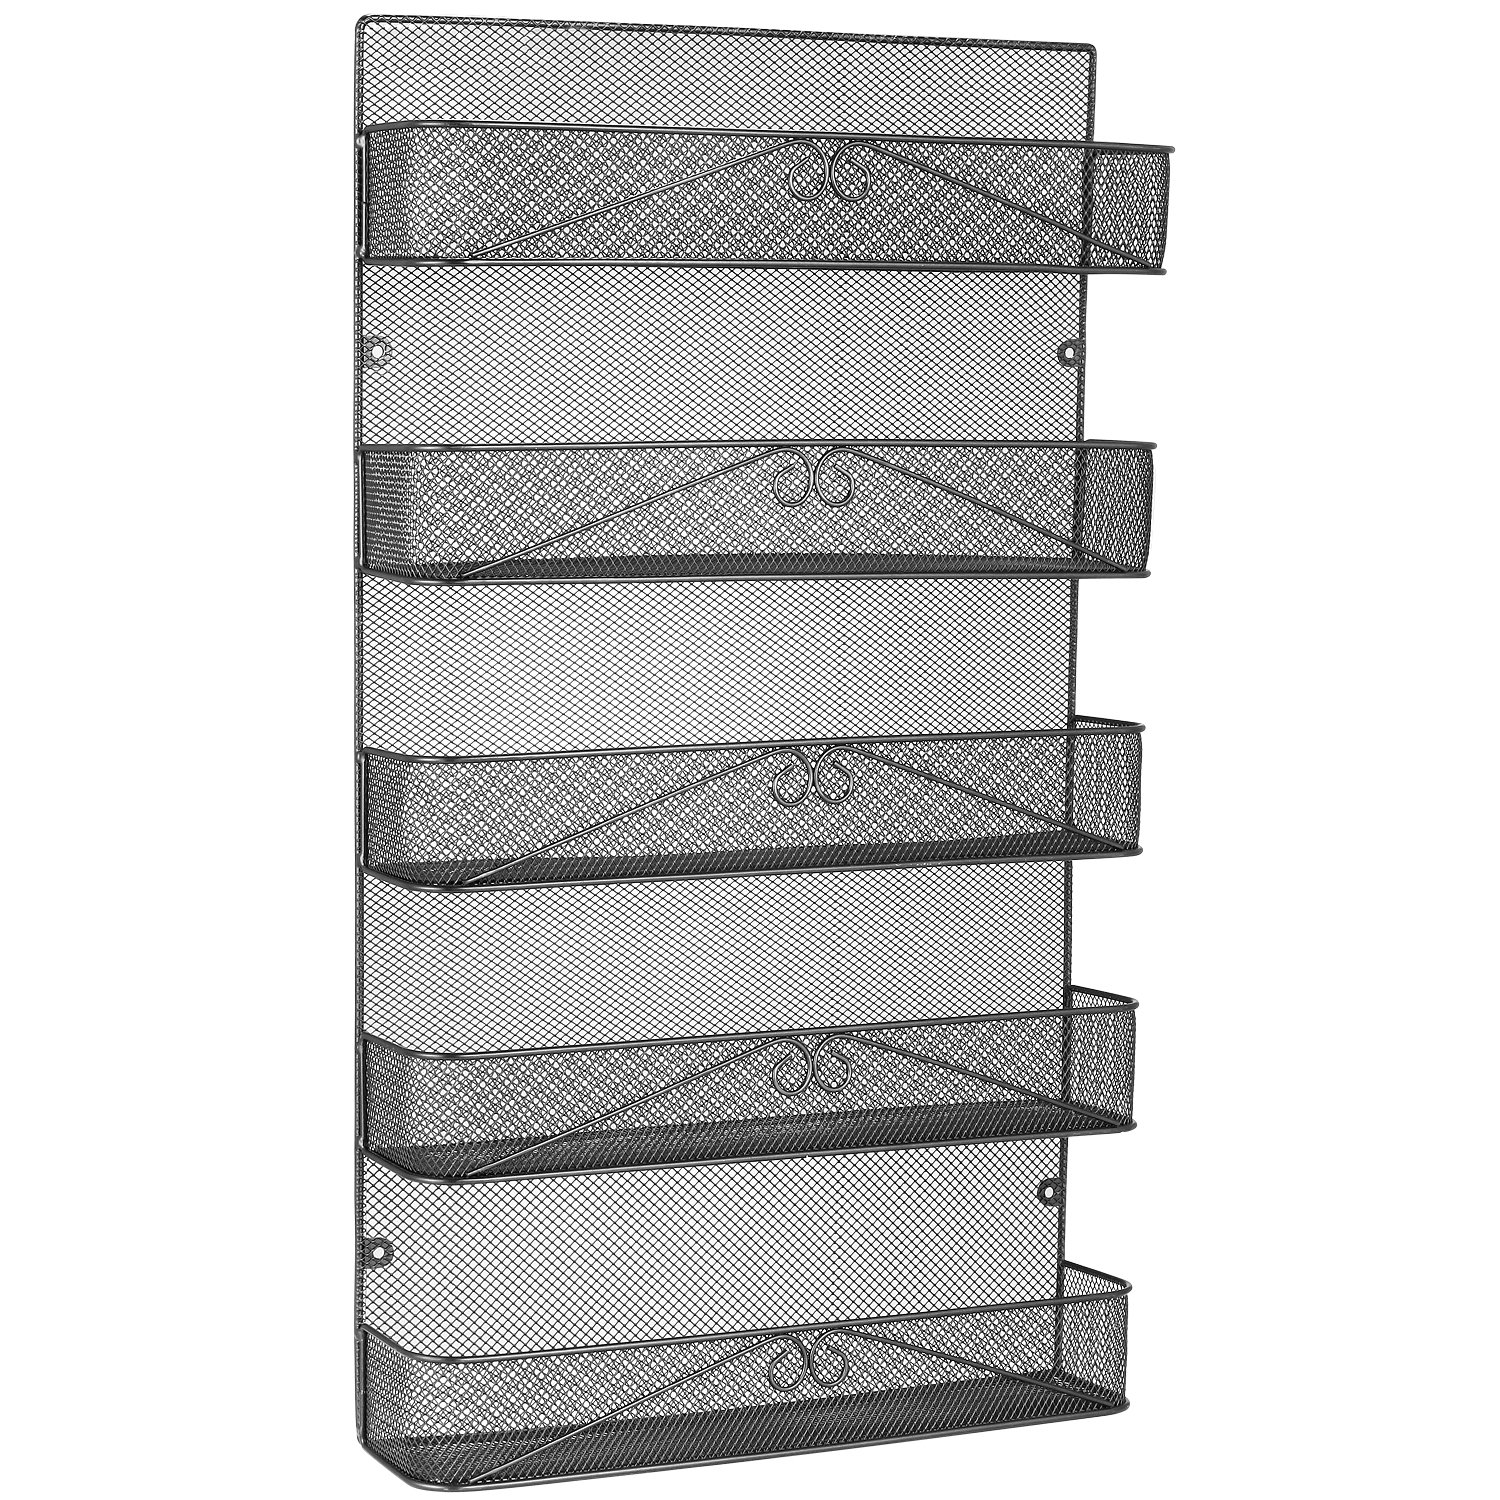 3S Spice Rack Organizer Wall Mount for Cabinet Pantry Door,Hanging Spice Shelf Full Cover,5-Tier,Black by 3S